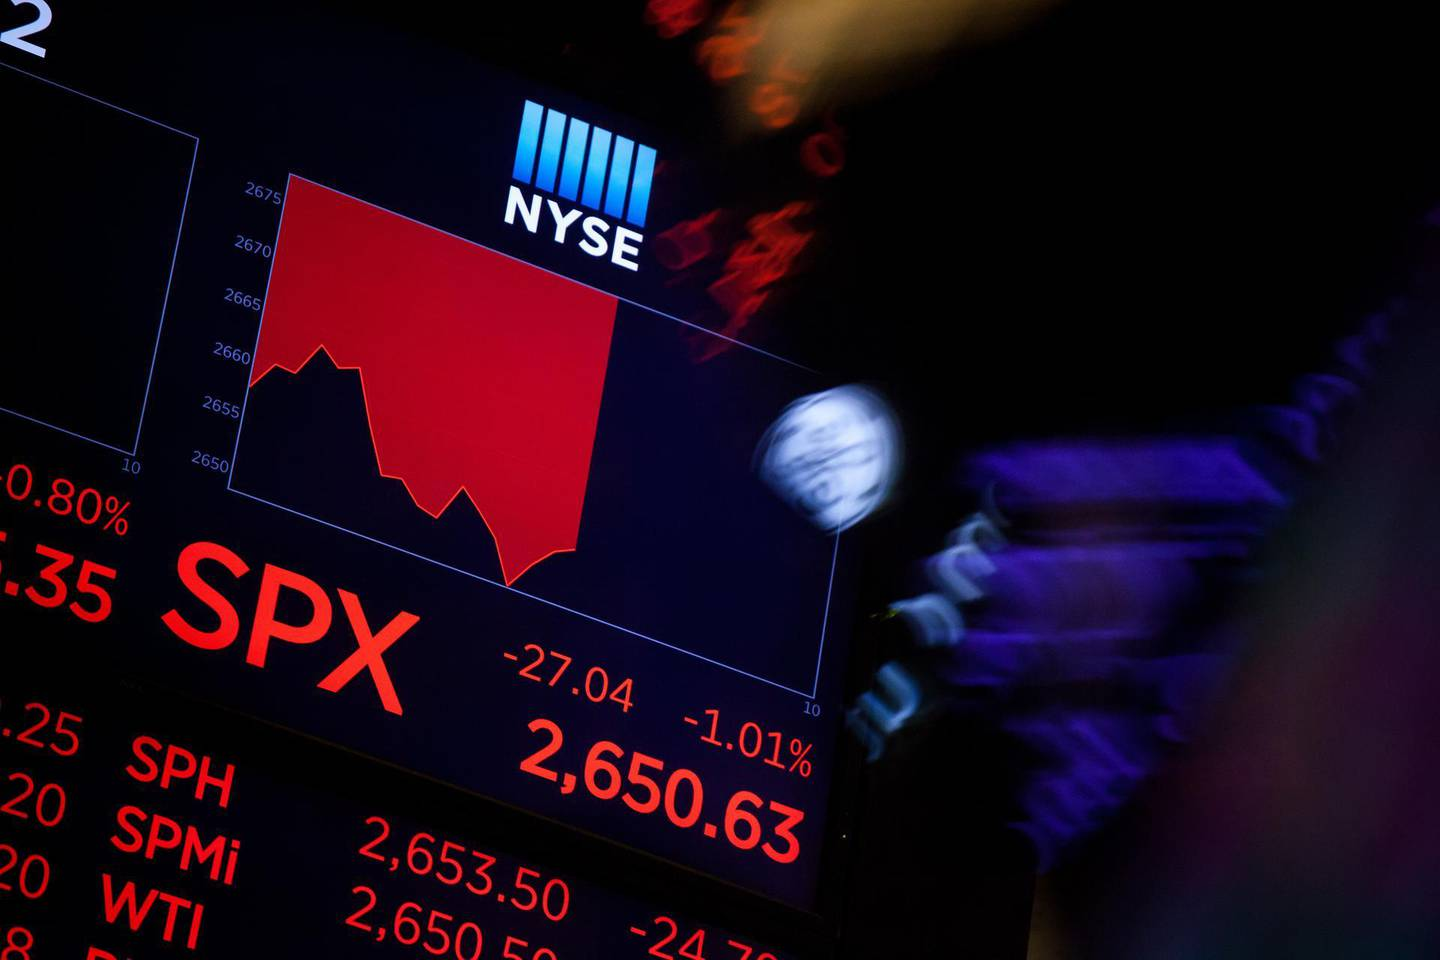 A monitor displays a S&P 500 Index (SPX) chart on the floor of the New York Stock Exchange (NYSE) in New York, U.S., on Friday, March 2, 2018. U.S. stocks fell, with megacaps bearing the brunt of selling, while Treasuries slipped with the dollar as investors assessed the impact of a potential trade war. Photographer: Michael Nagle/Bloomberg